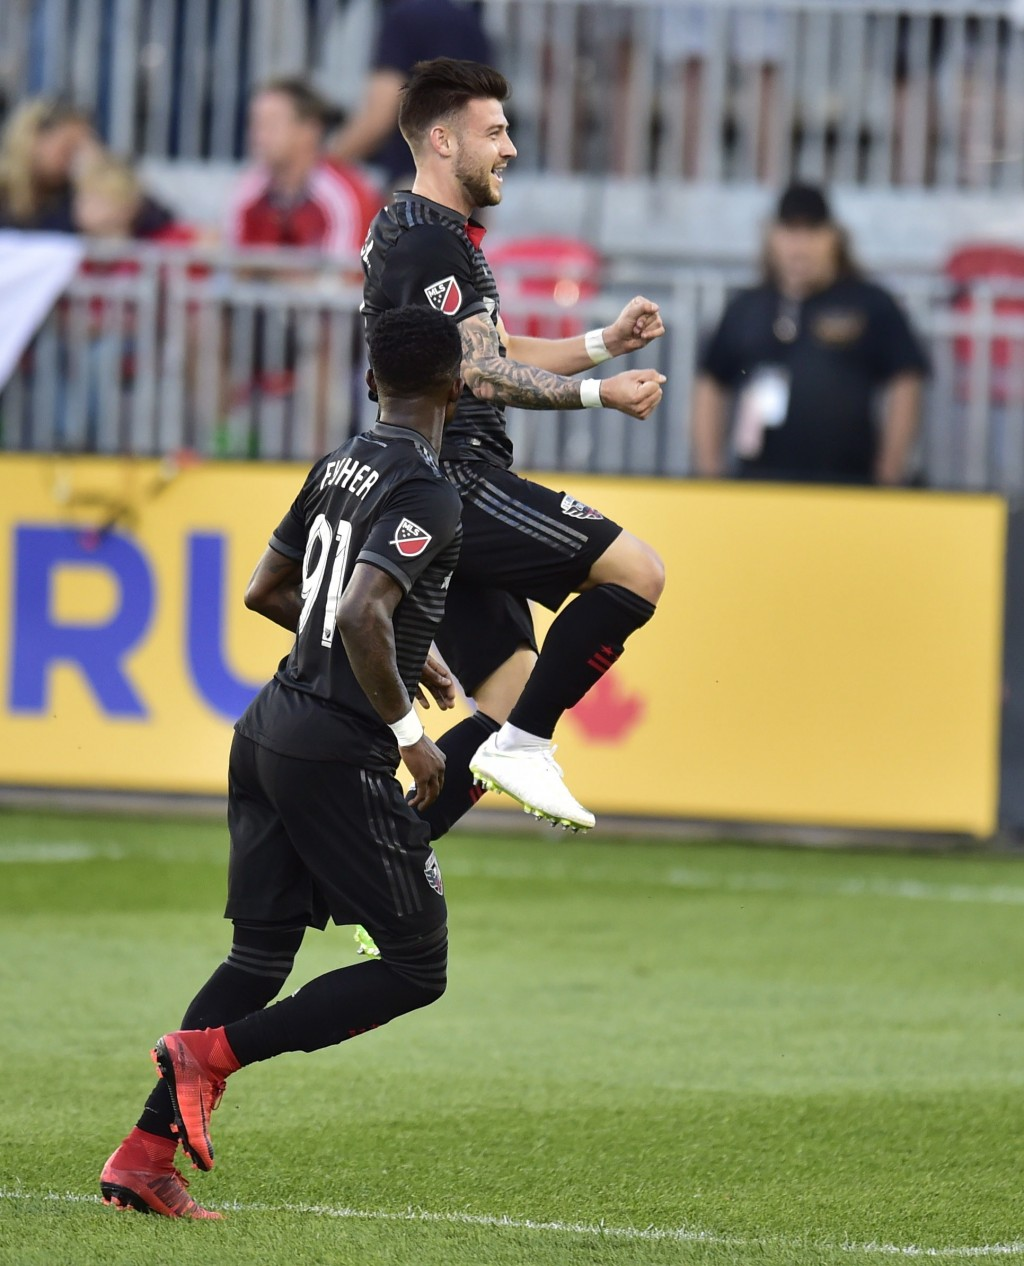 D.C. United forward Paul Arriola celebrates his goal against Toronto FC with teammate Oniel Fisher (91) during the first half of an MLS soccer match W